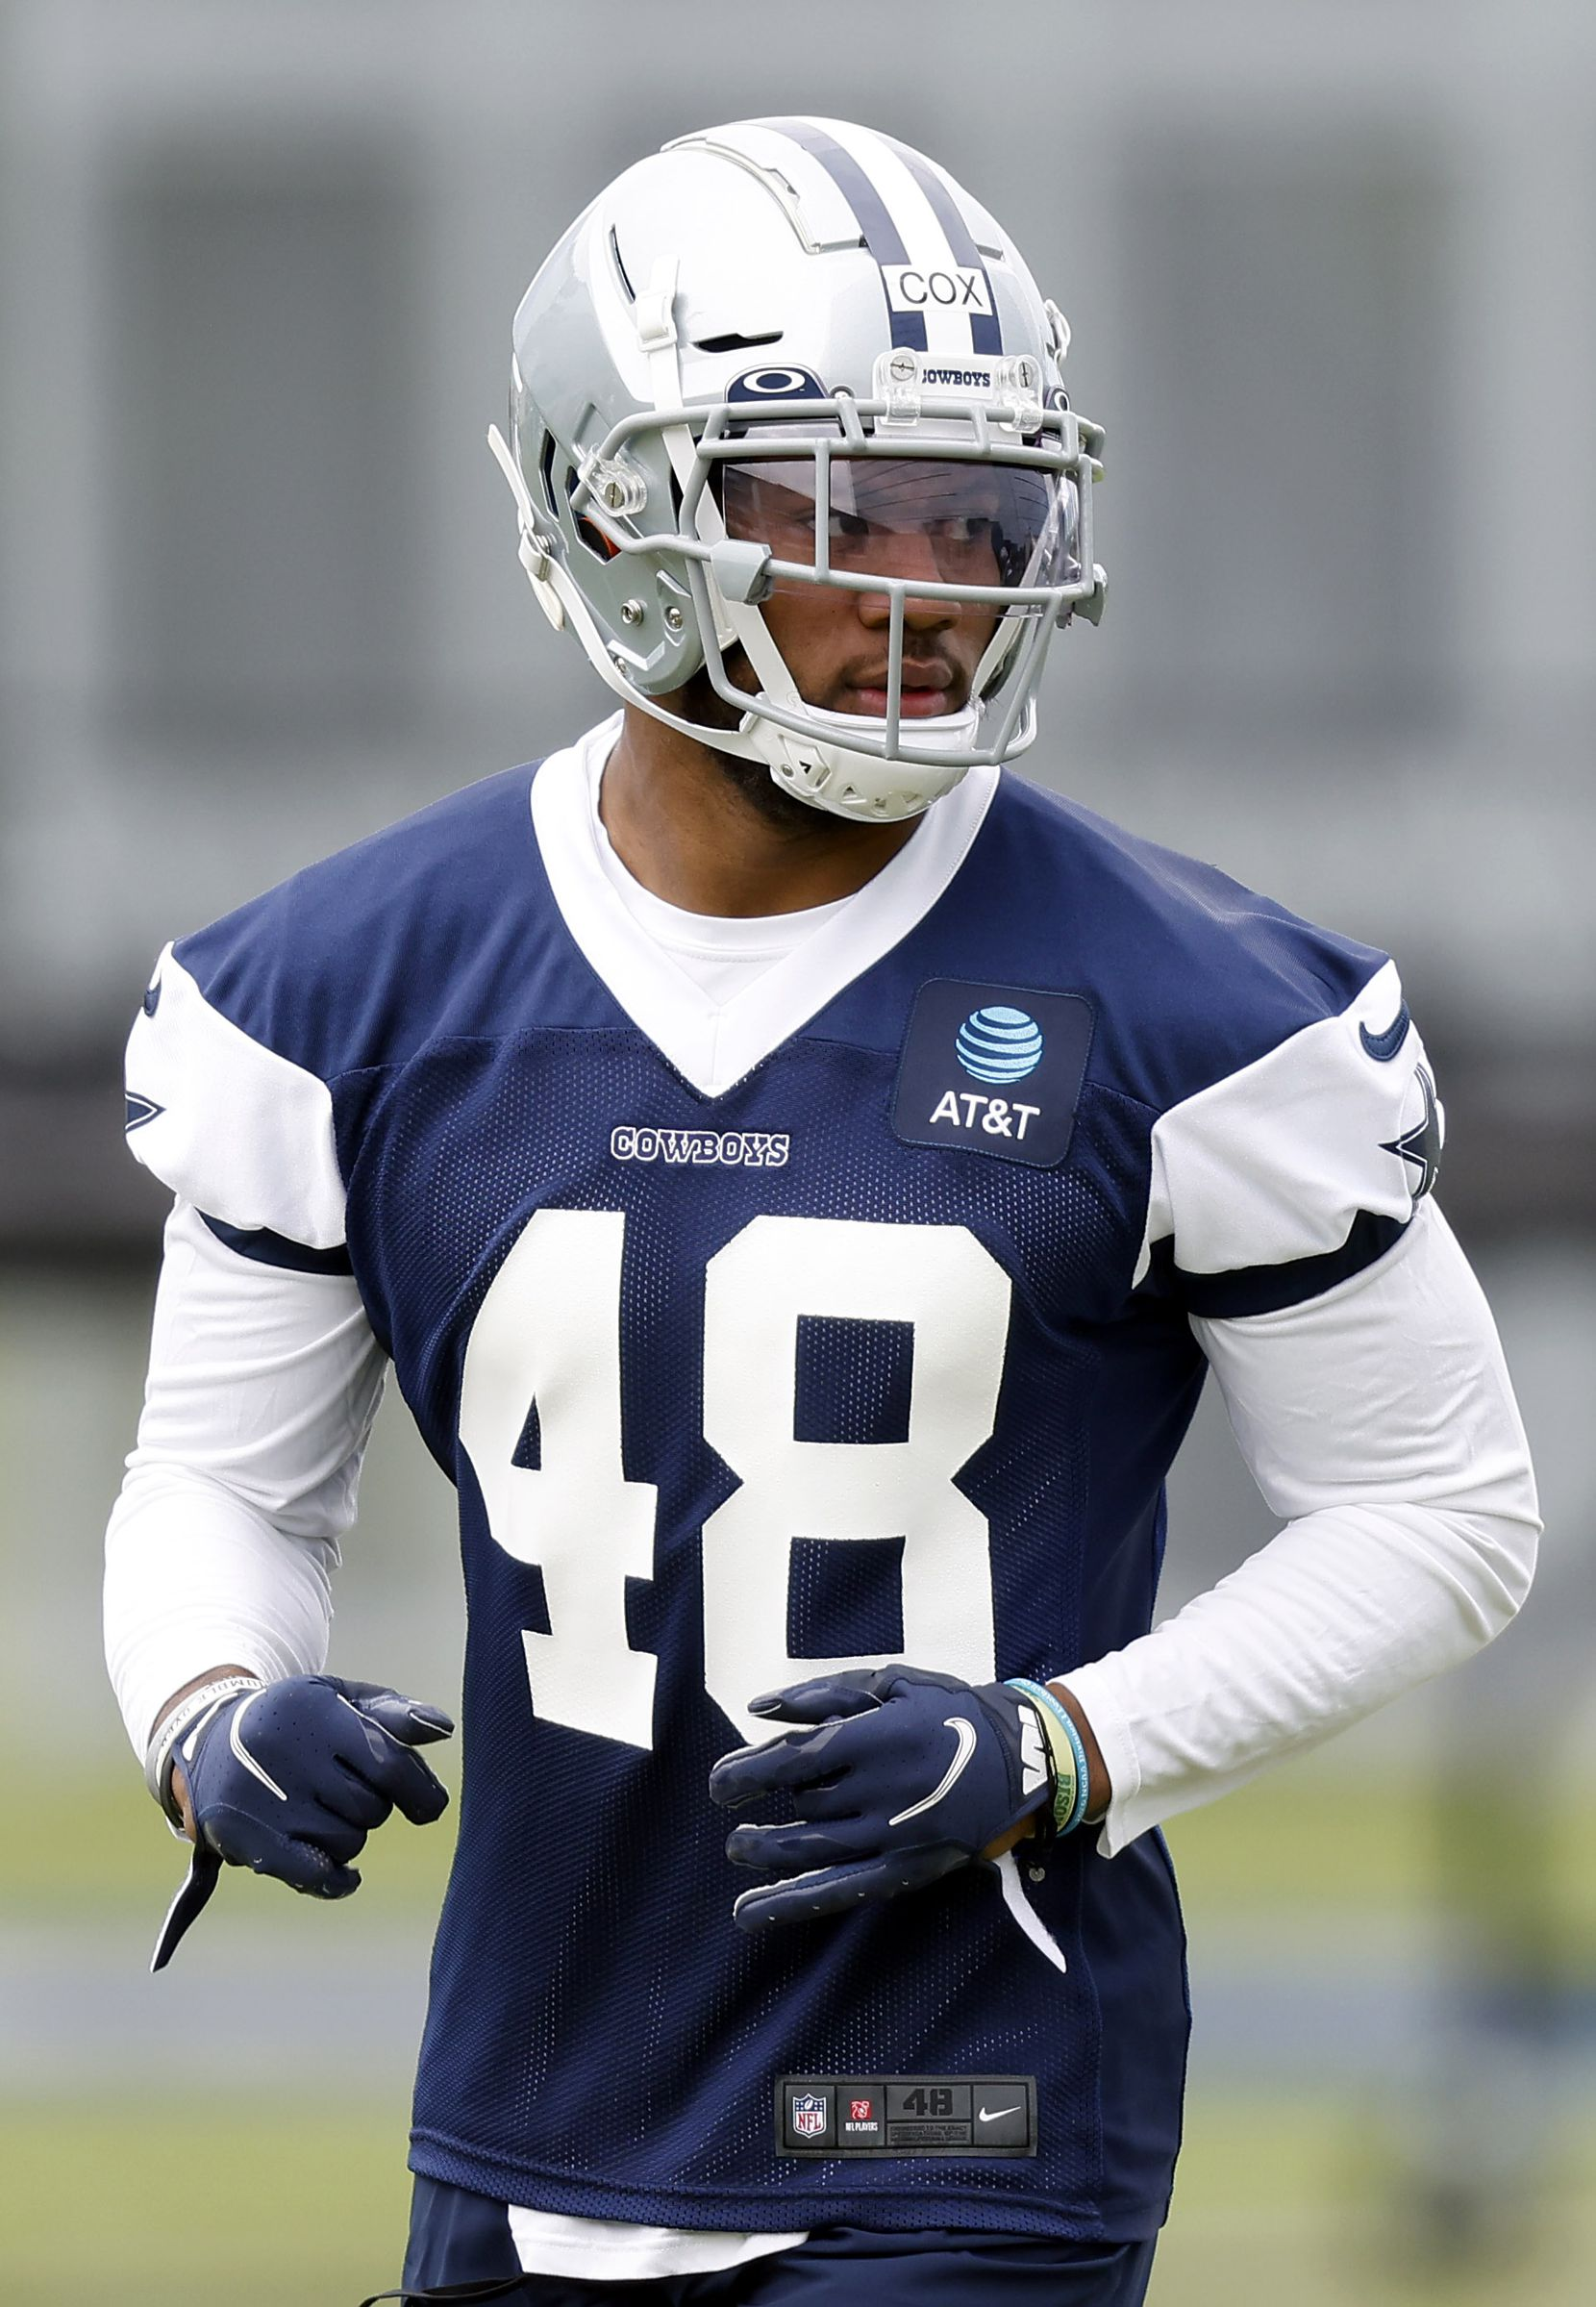 Dallas Cowboys rookie linebacker Jabril Cox (48)lines up for a drill during rookie minicamp at The Star in Frisco, Texas, Friday, May 14, 2021. (Tom Fox/The Dallas Morning News)